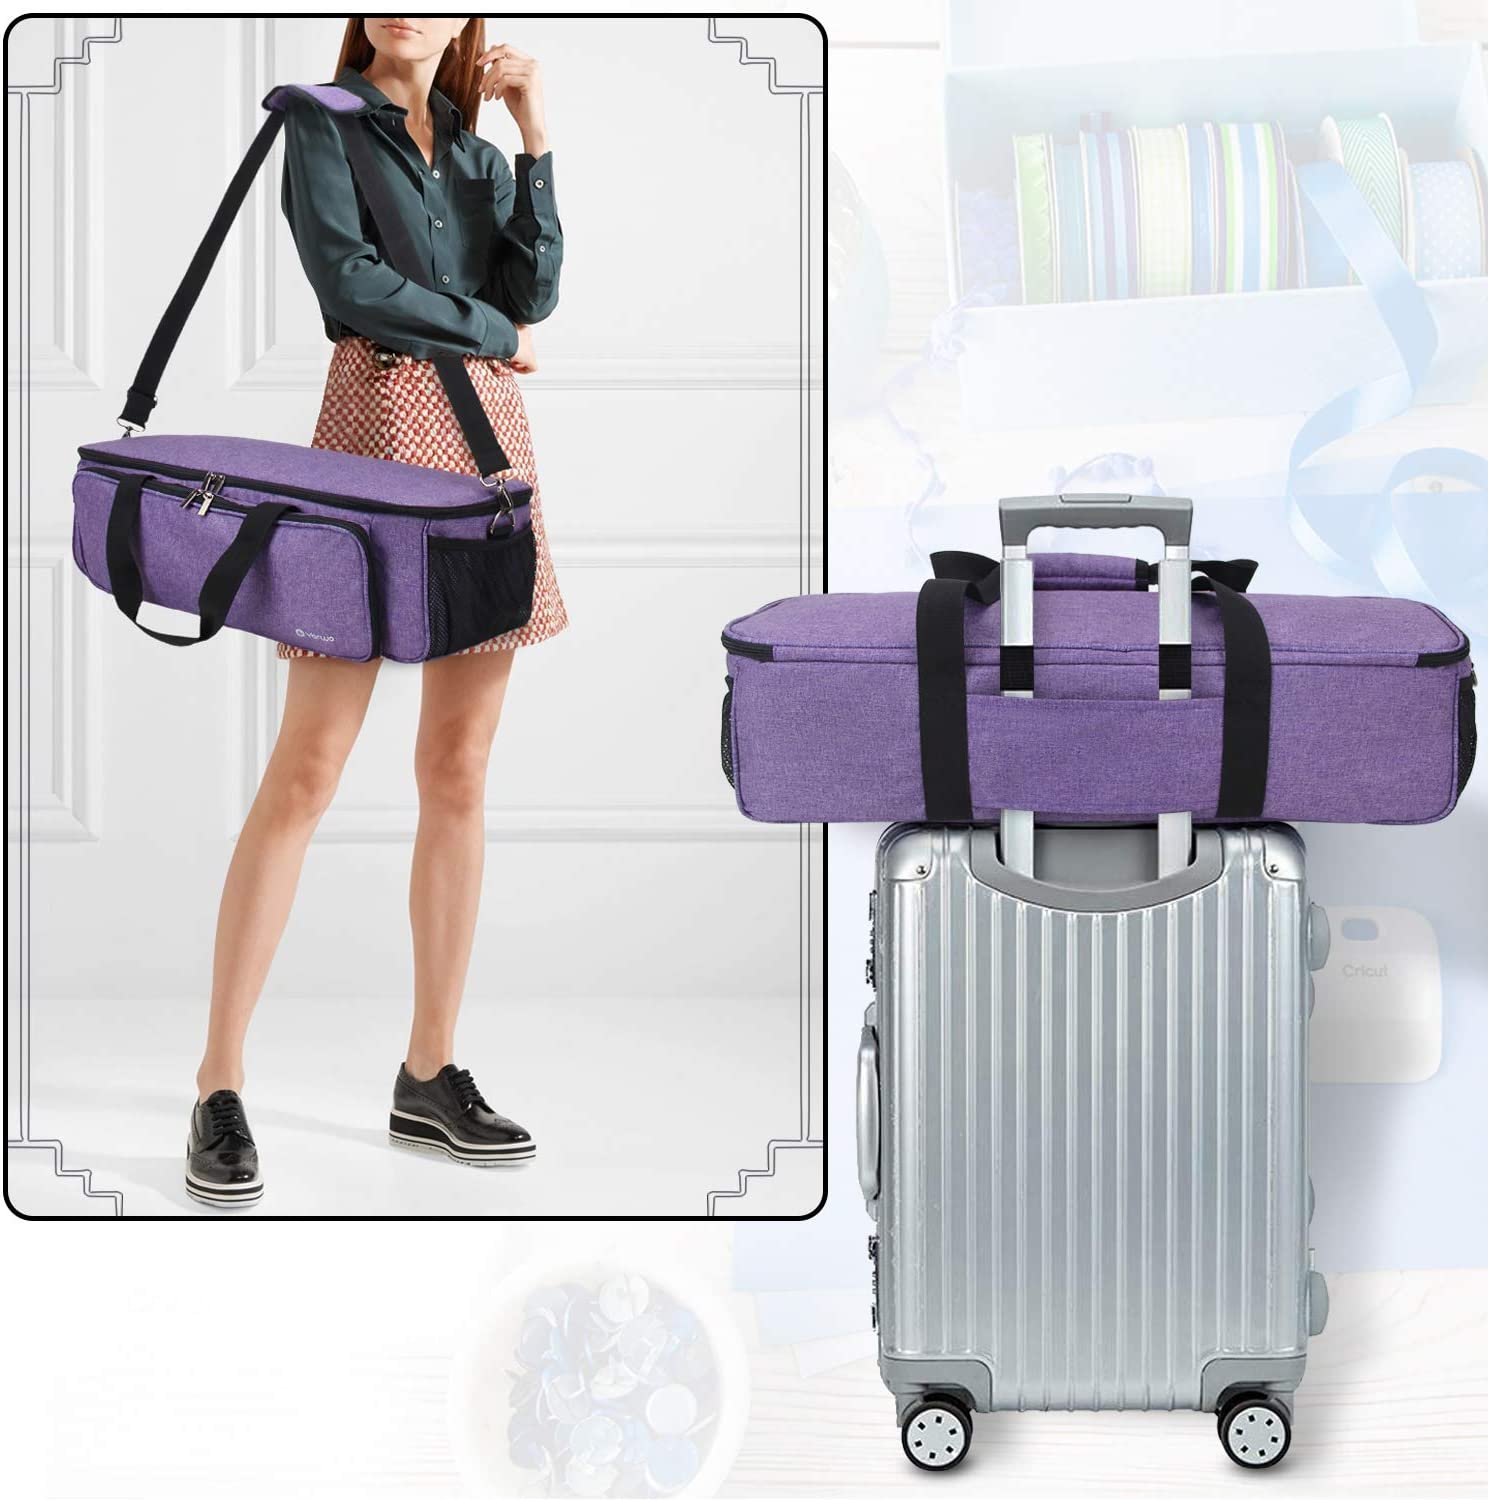 Air 2 Yarwo Carrying Bag for Cricut Explore Air Tote Bag Heavy Duty Nylon Travel Bag Compatible with Cricut Accessories Supplies Bag Only Cricut Maker Silhouette Cameo 3 Purple